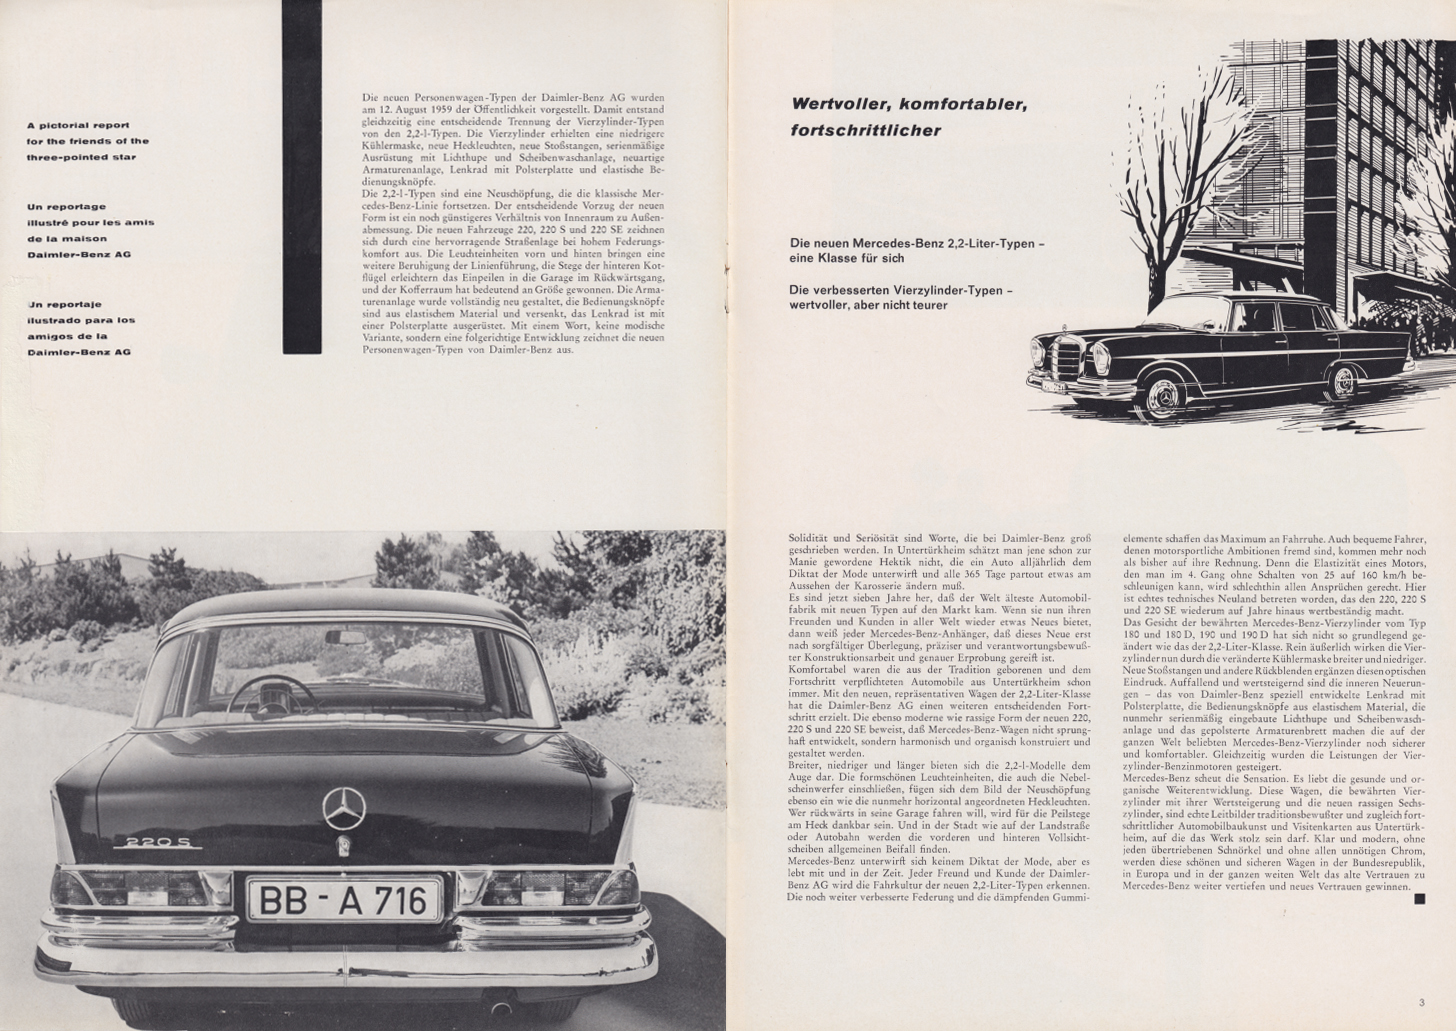 (REVISTA): Periódico In aller welt n.º 34 - Mercedes-Benz no mundo - 1959 - multilingue 002